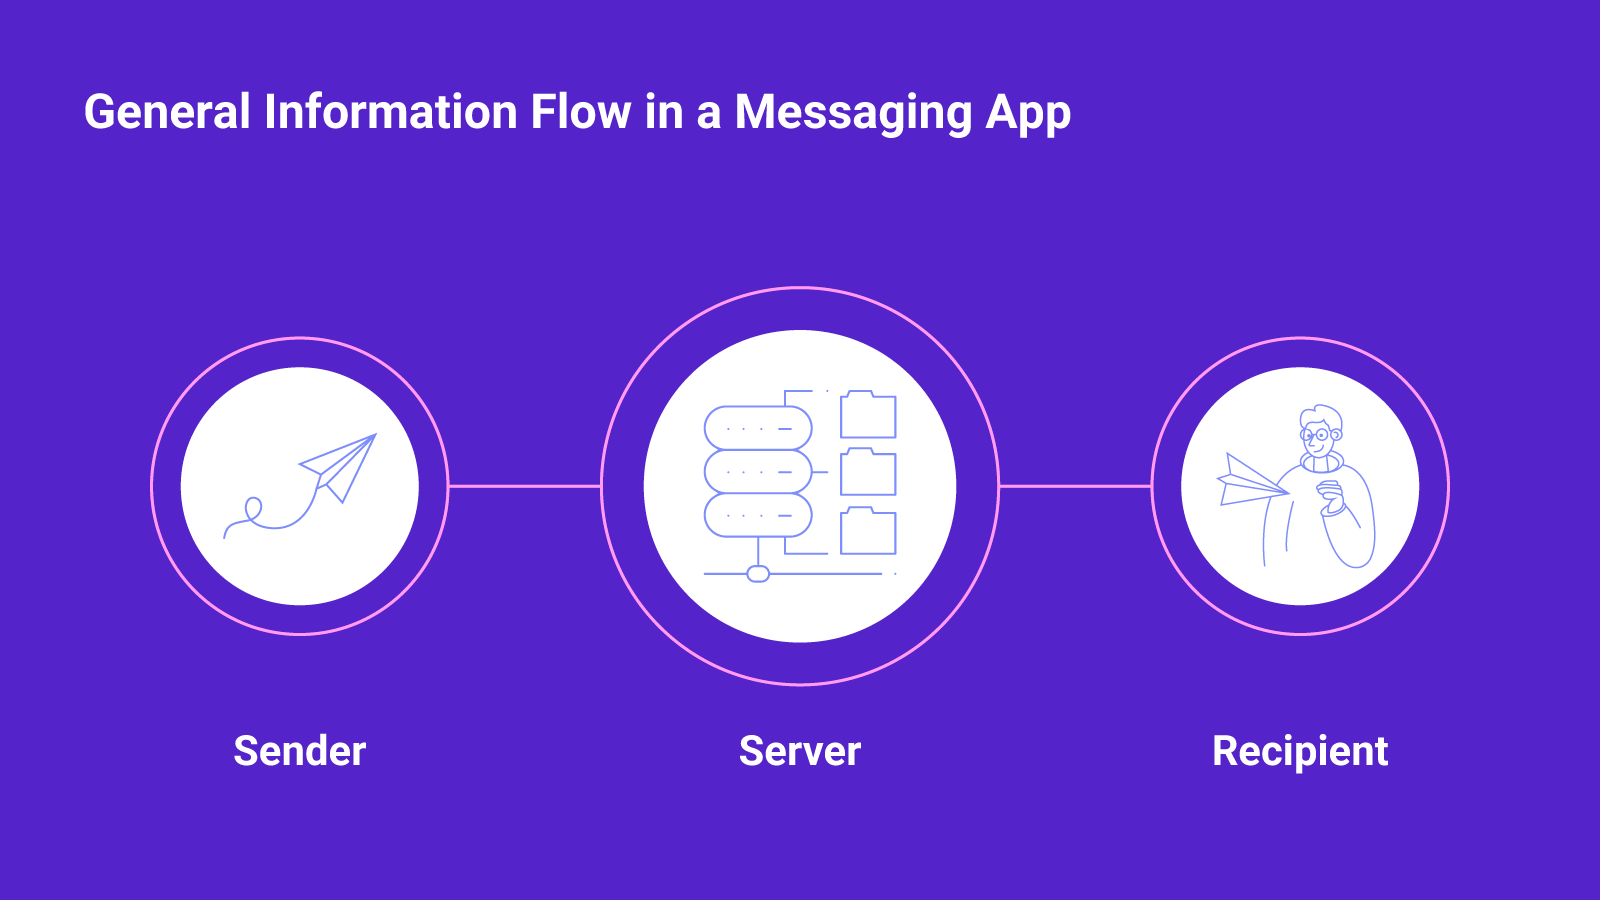 Client-server-client model of the messaging application